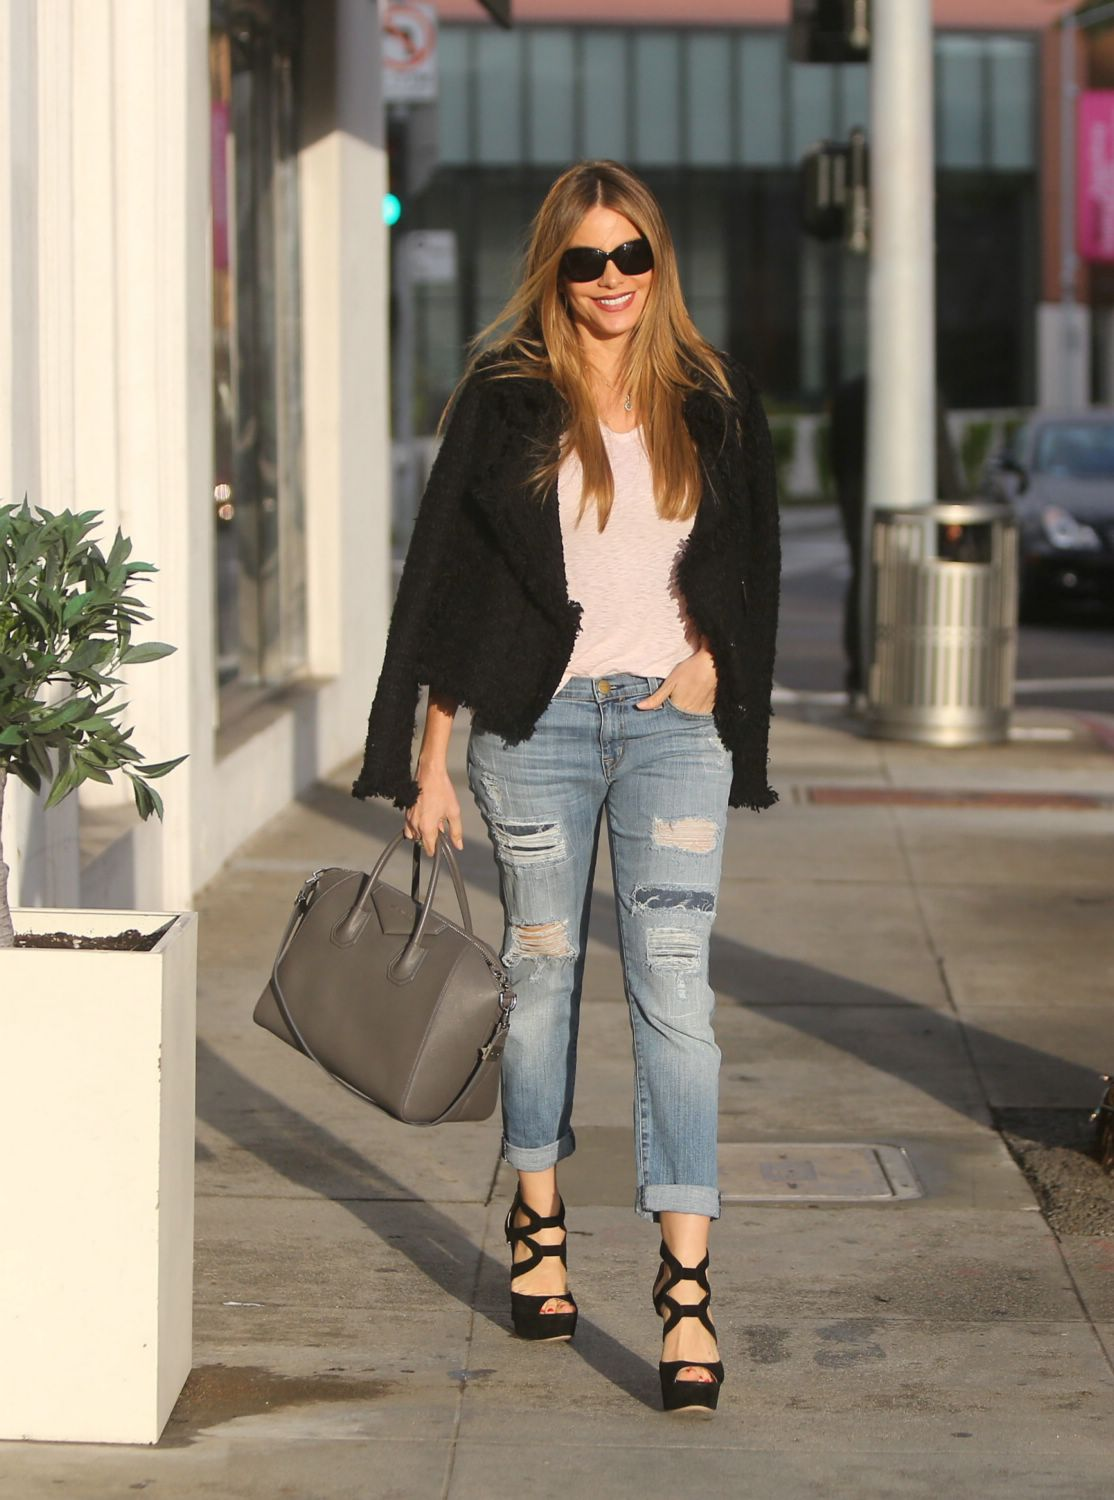 Sofia Vergara went to BOA in ripped jeans and heels to meet boyfriend Joe Manganiello for lunch 16, 2014.